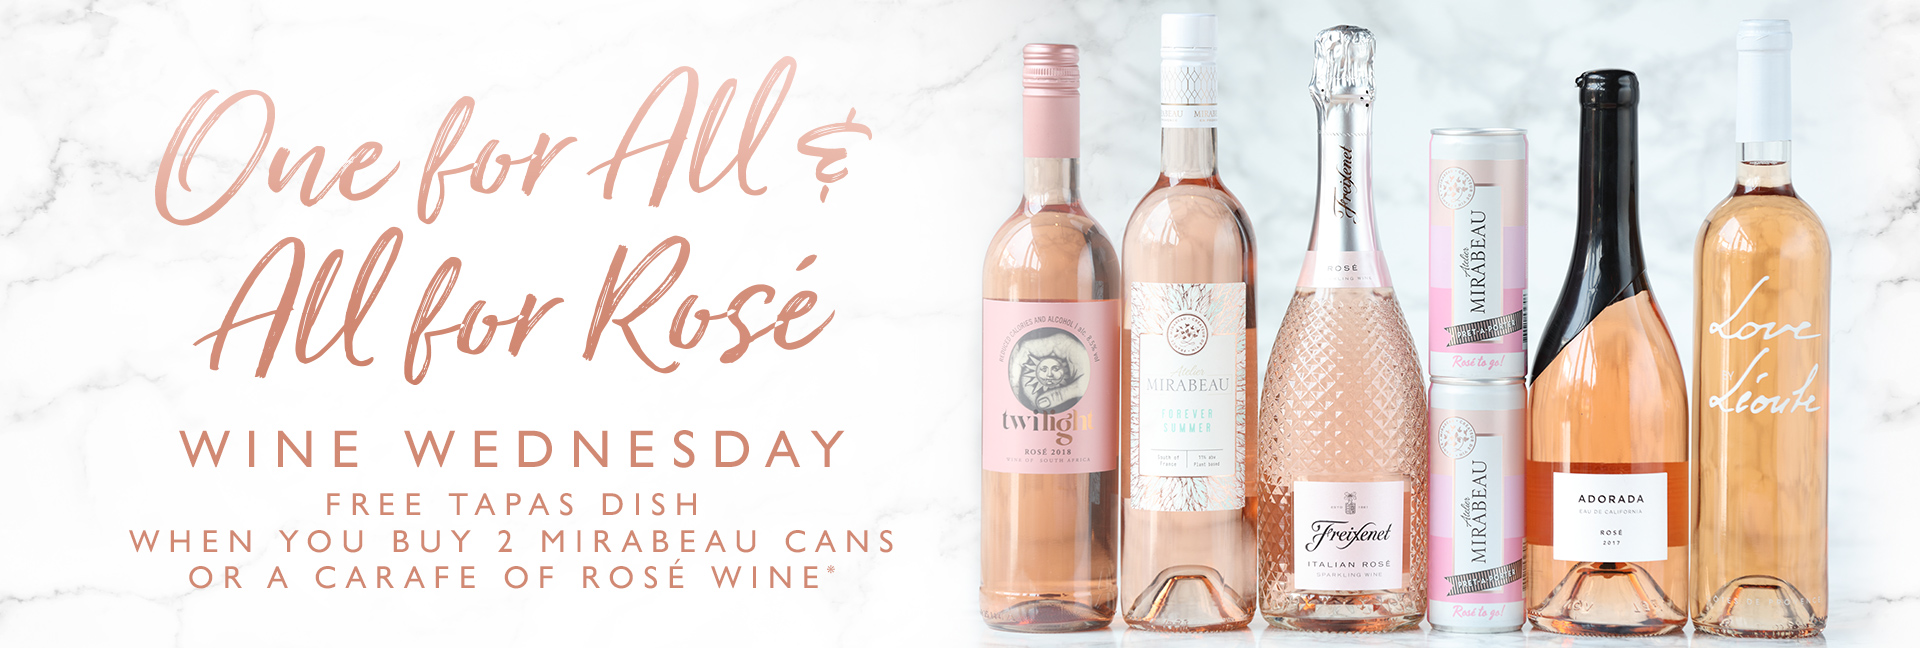 Wine Wednesday at All Bar One Guildford